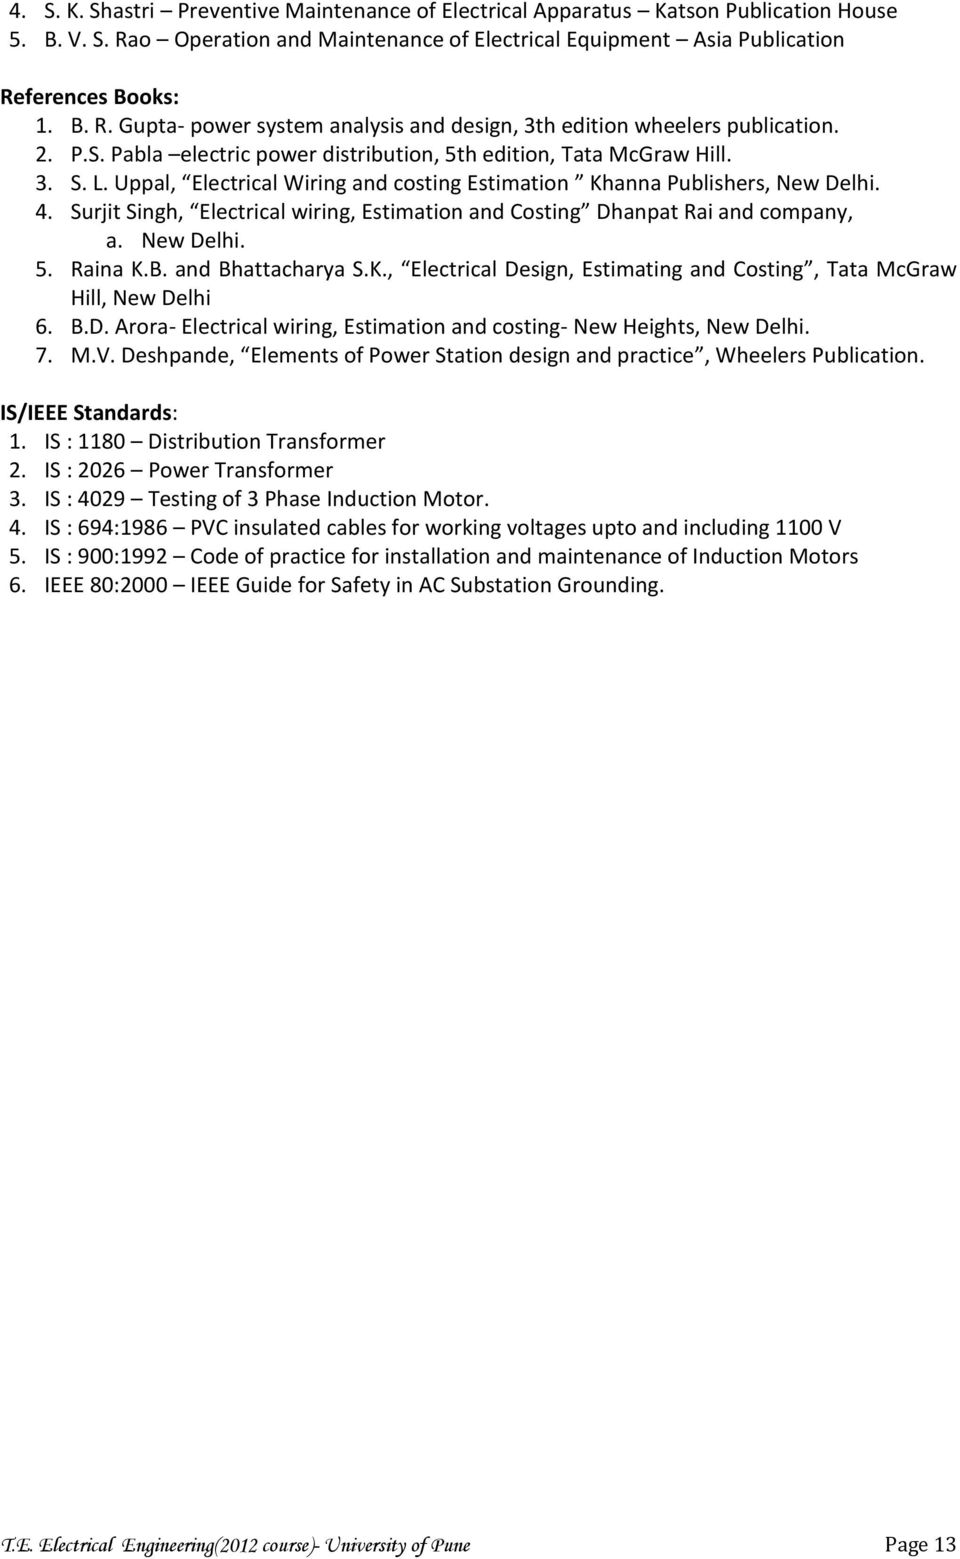 hight resolution of surjit singh electrical wiring estimation and costing dhanpat rai and company a